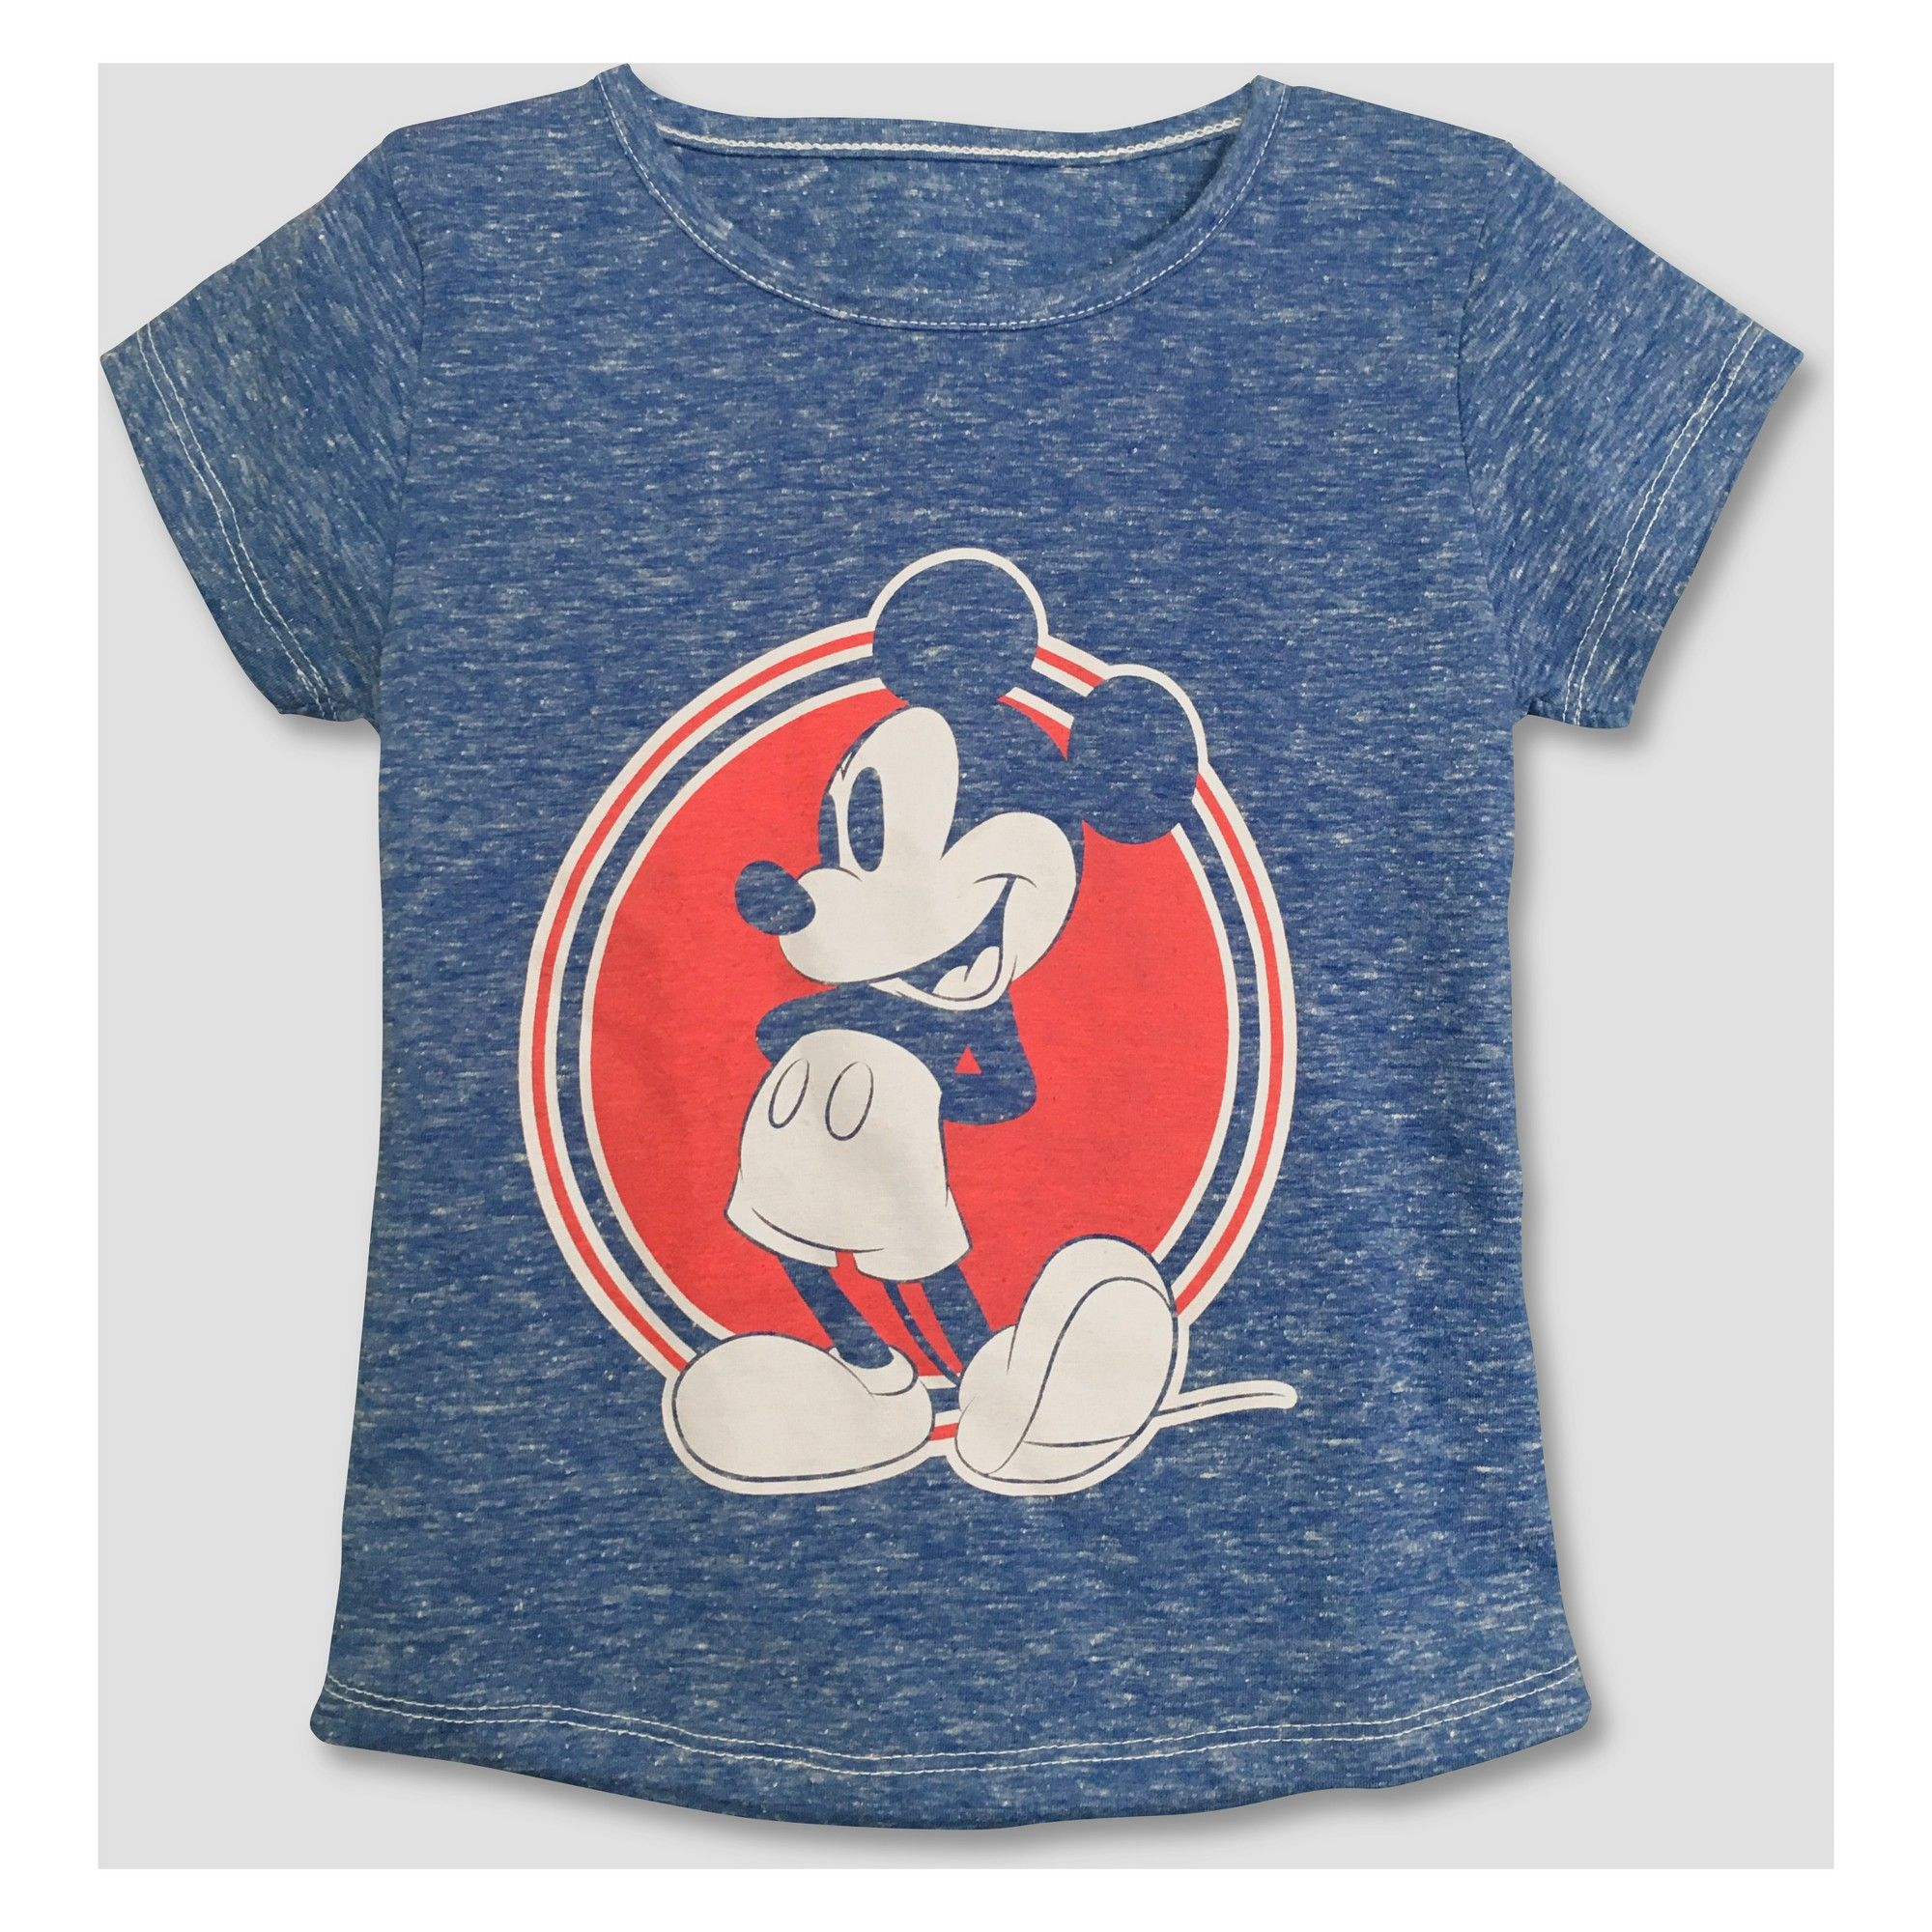 7ac9870ece92 Toddler Girls  Mickey Mouse   Friends Minnie Mouse Short Sleeve T-Shirt -  Blue 18M